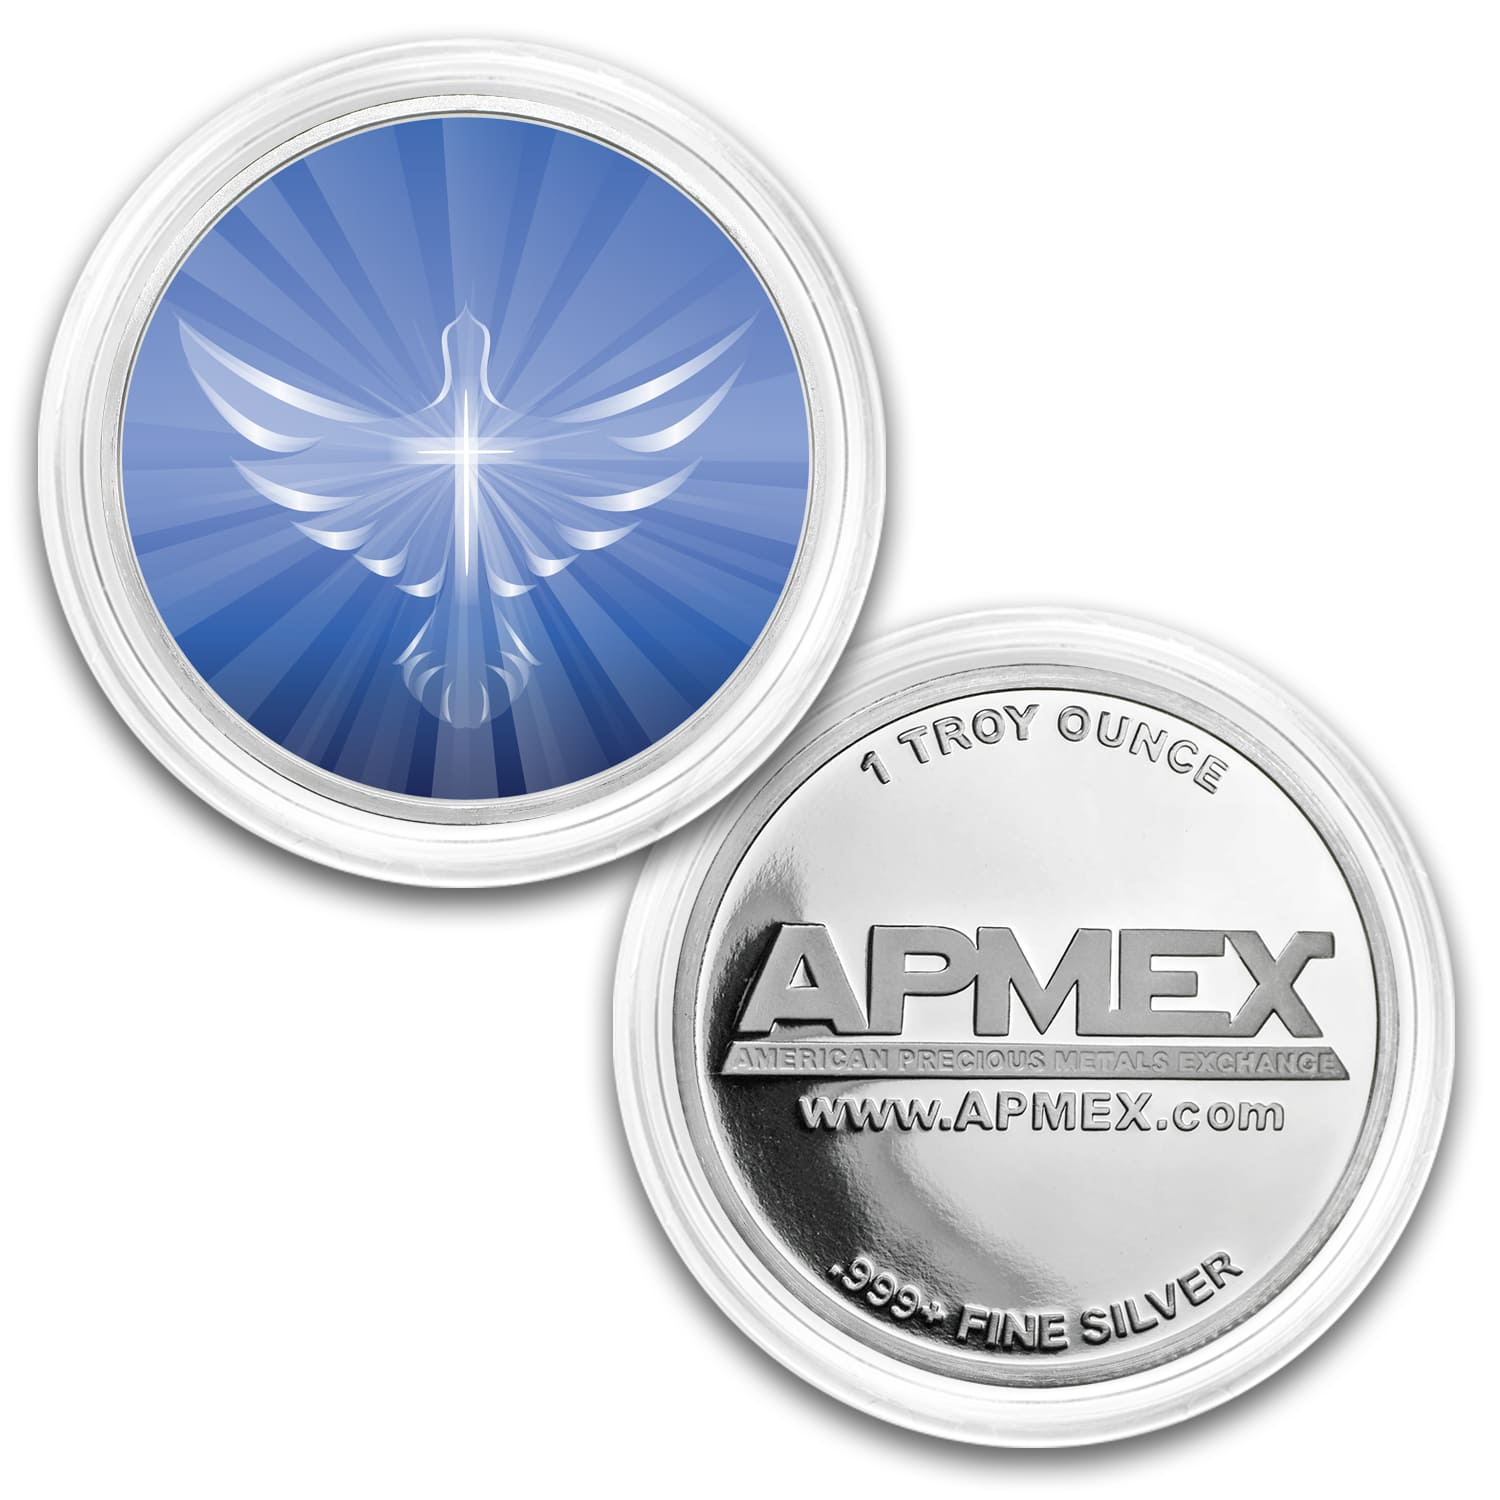 1 oz Silver Colorized Round - APMEX (Morning In the Light)